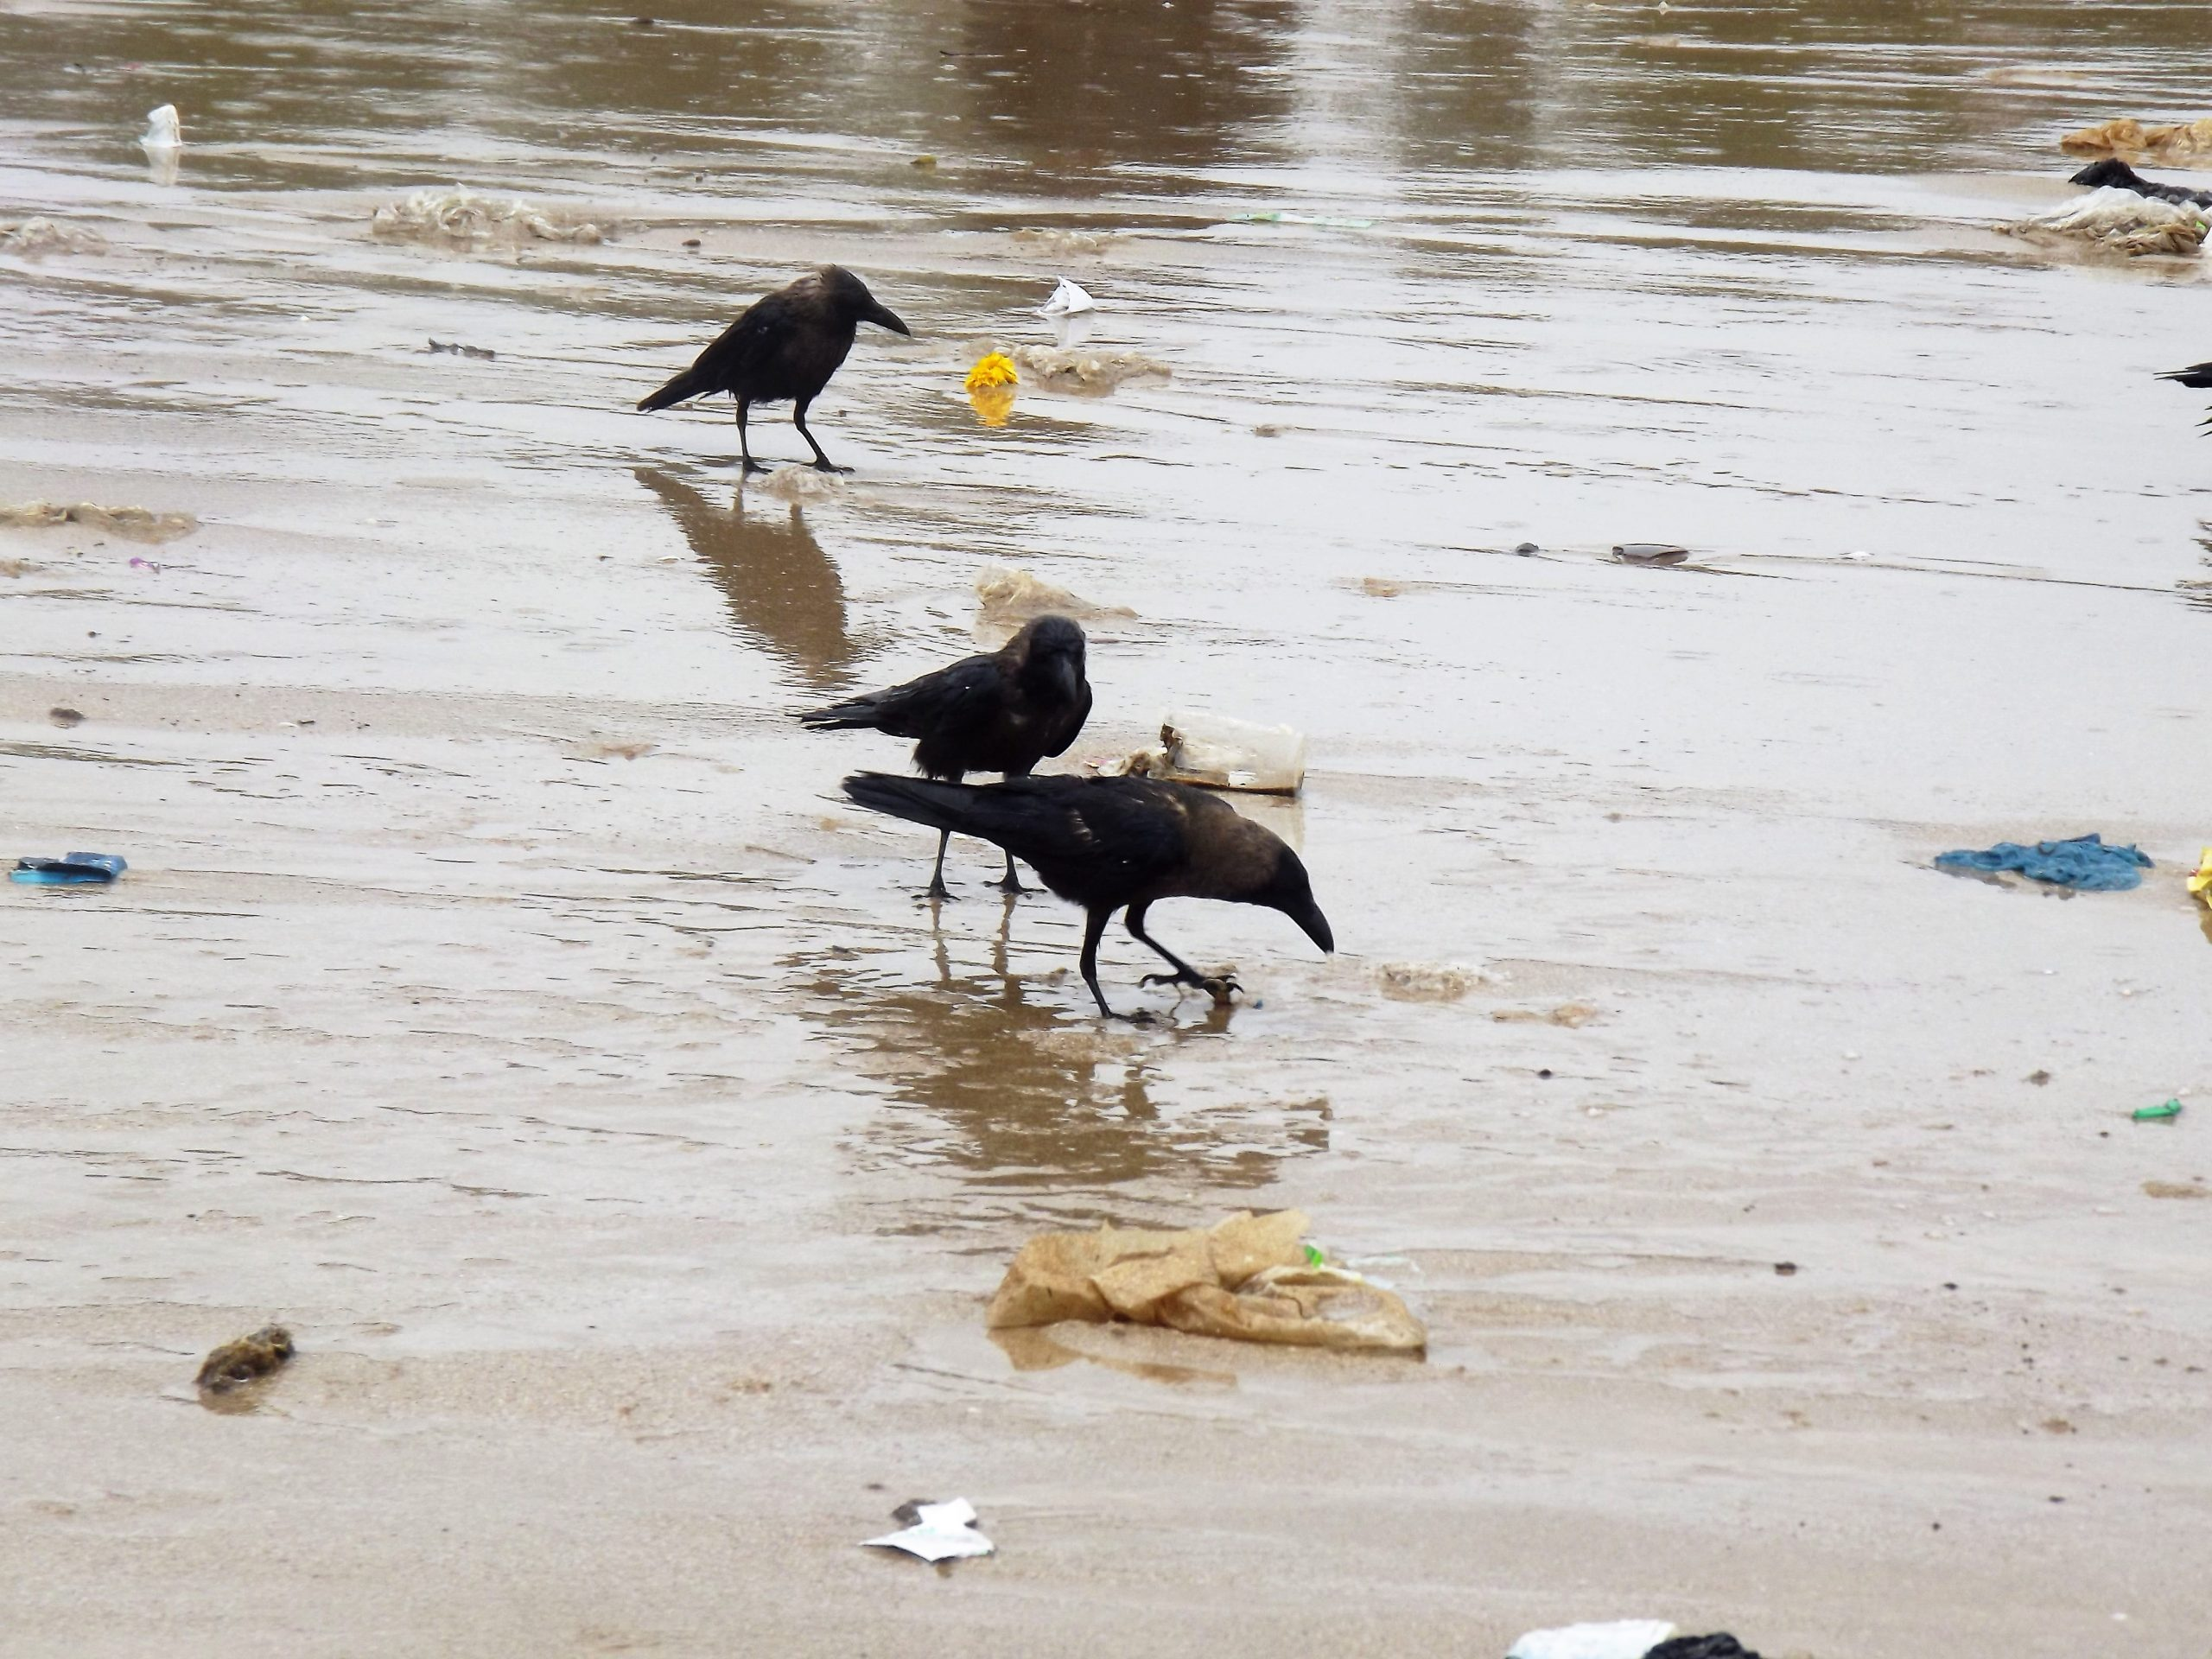 Crows sitting on a beach side